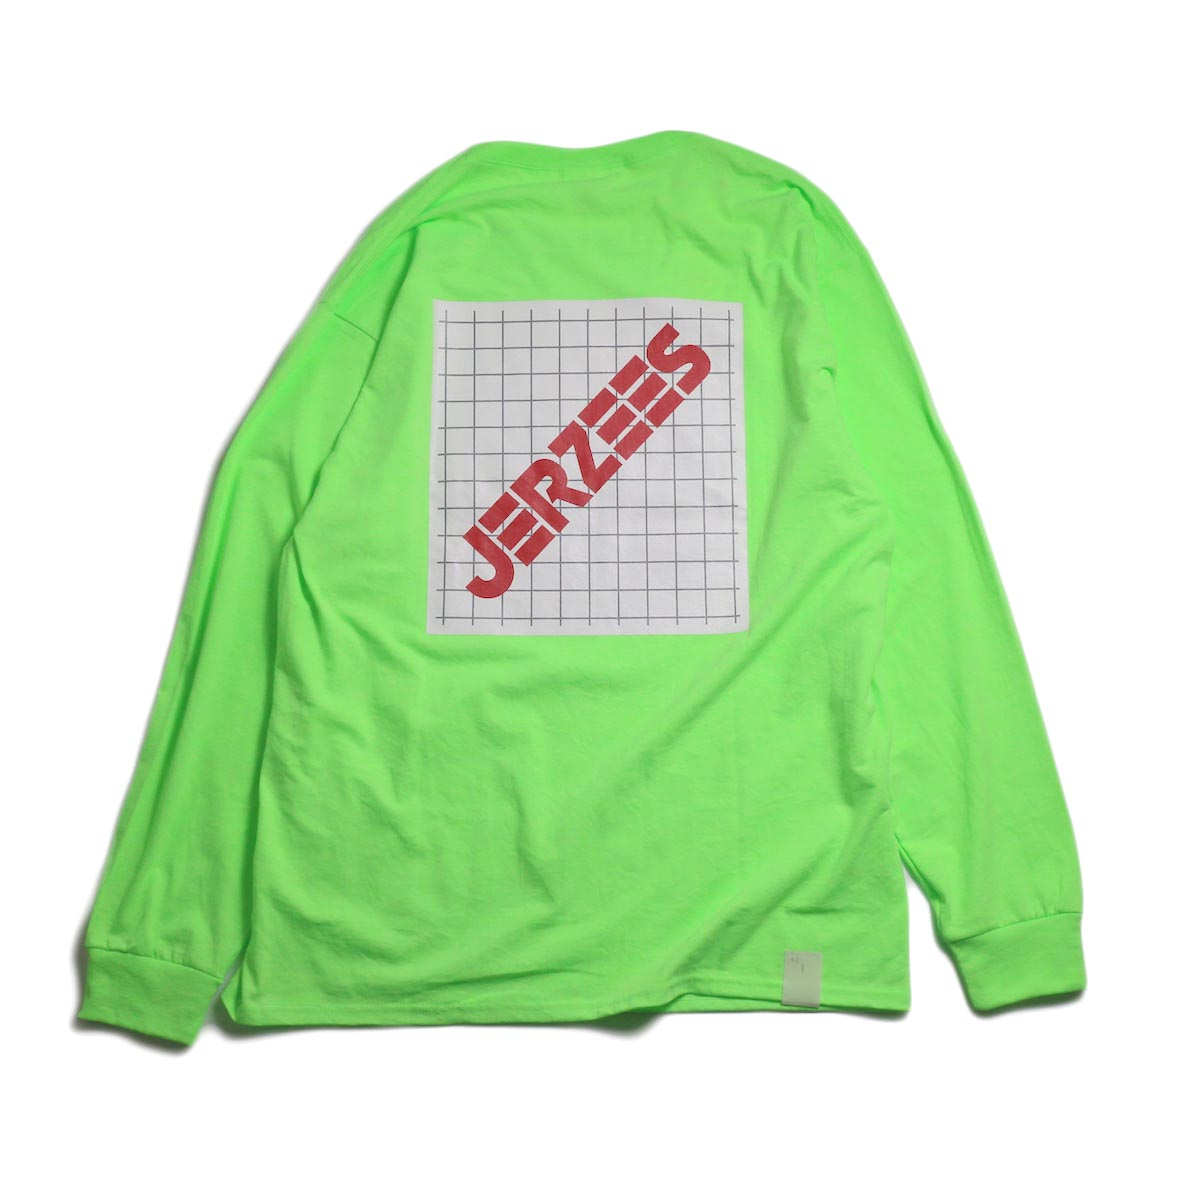 N.HOOLYWOOD × JERZEES  / 191-CS43-070 Long Sleeve Tee -Green 背面